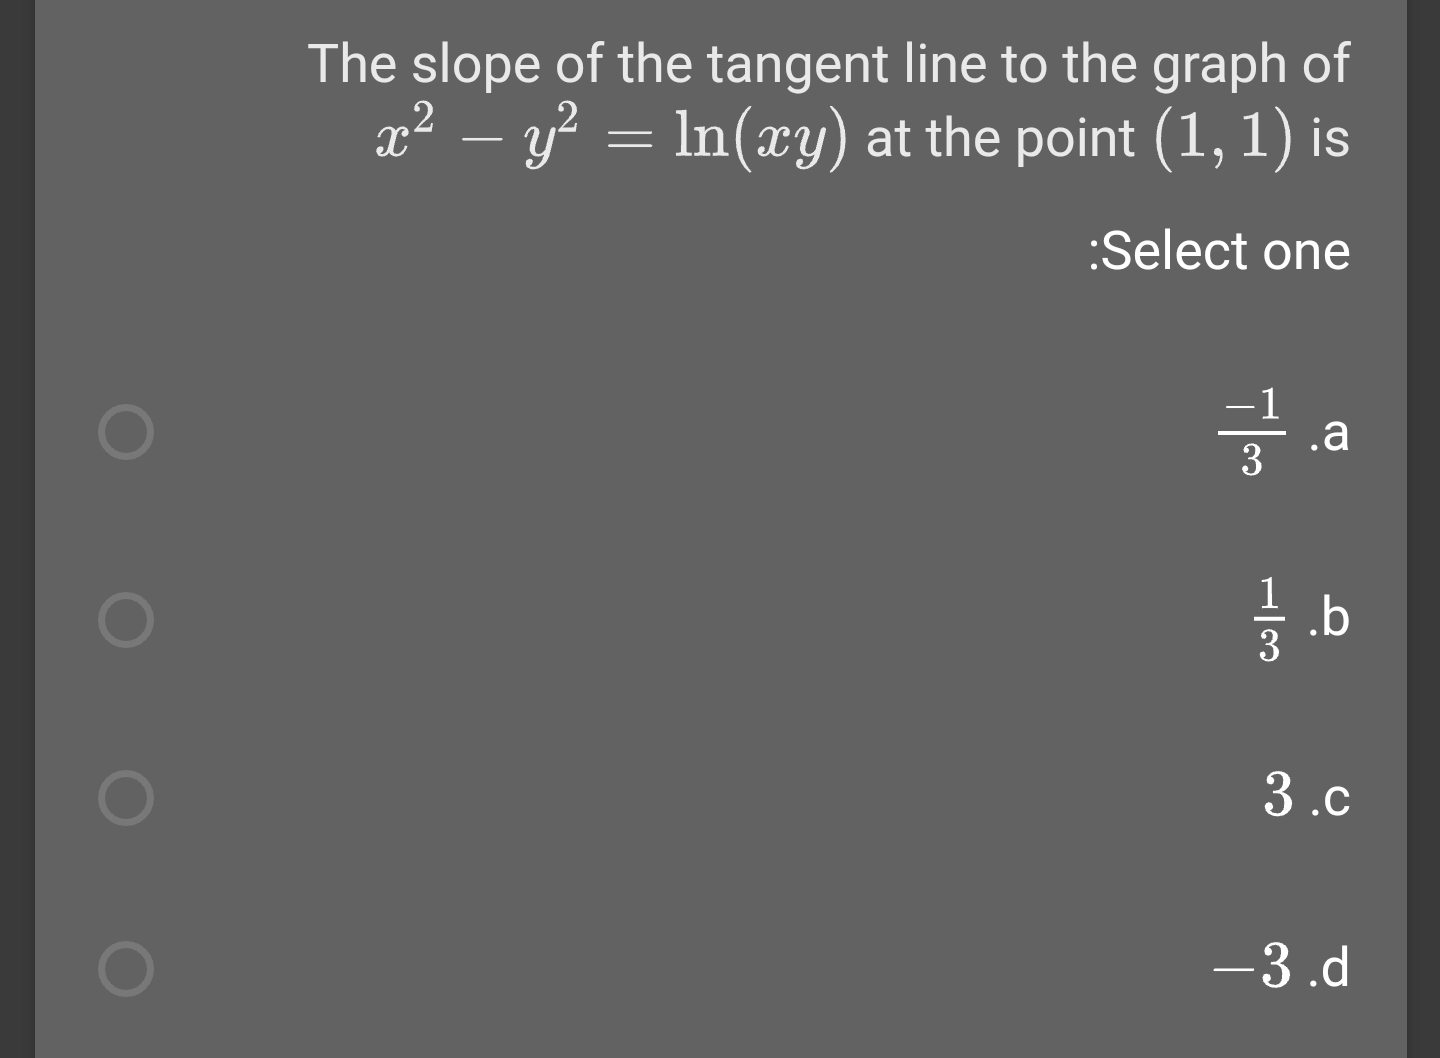 The slope of the tangent line to the graph of x2 – y? = ln(xy) at the point (1, 1) is